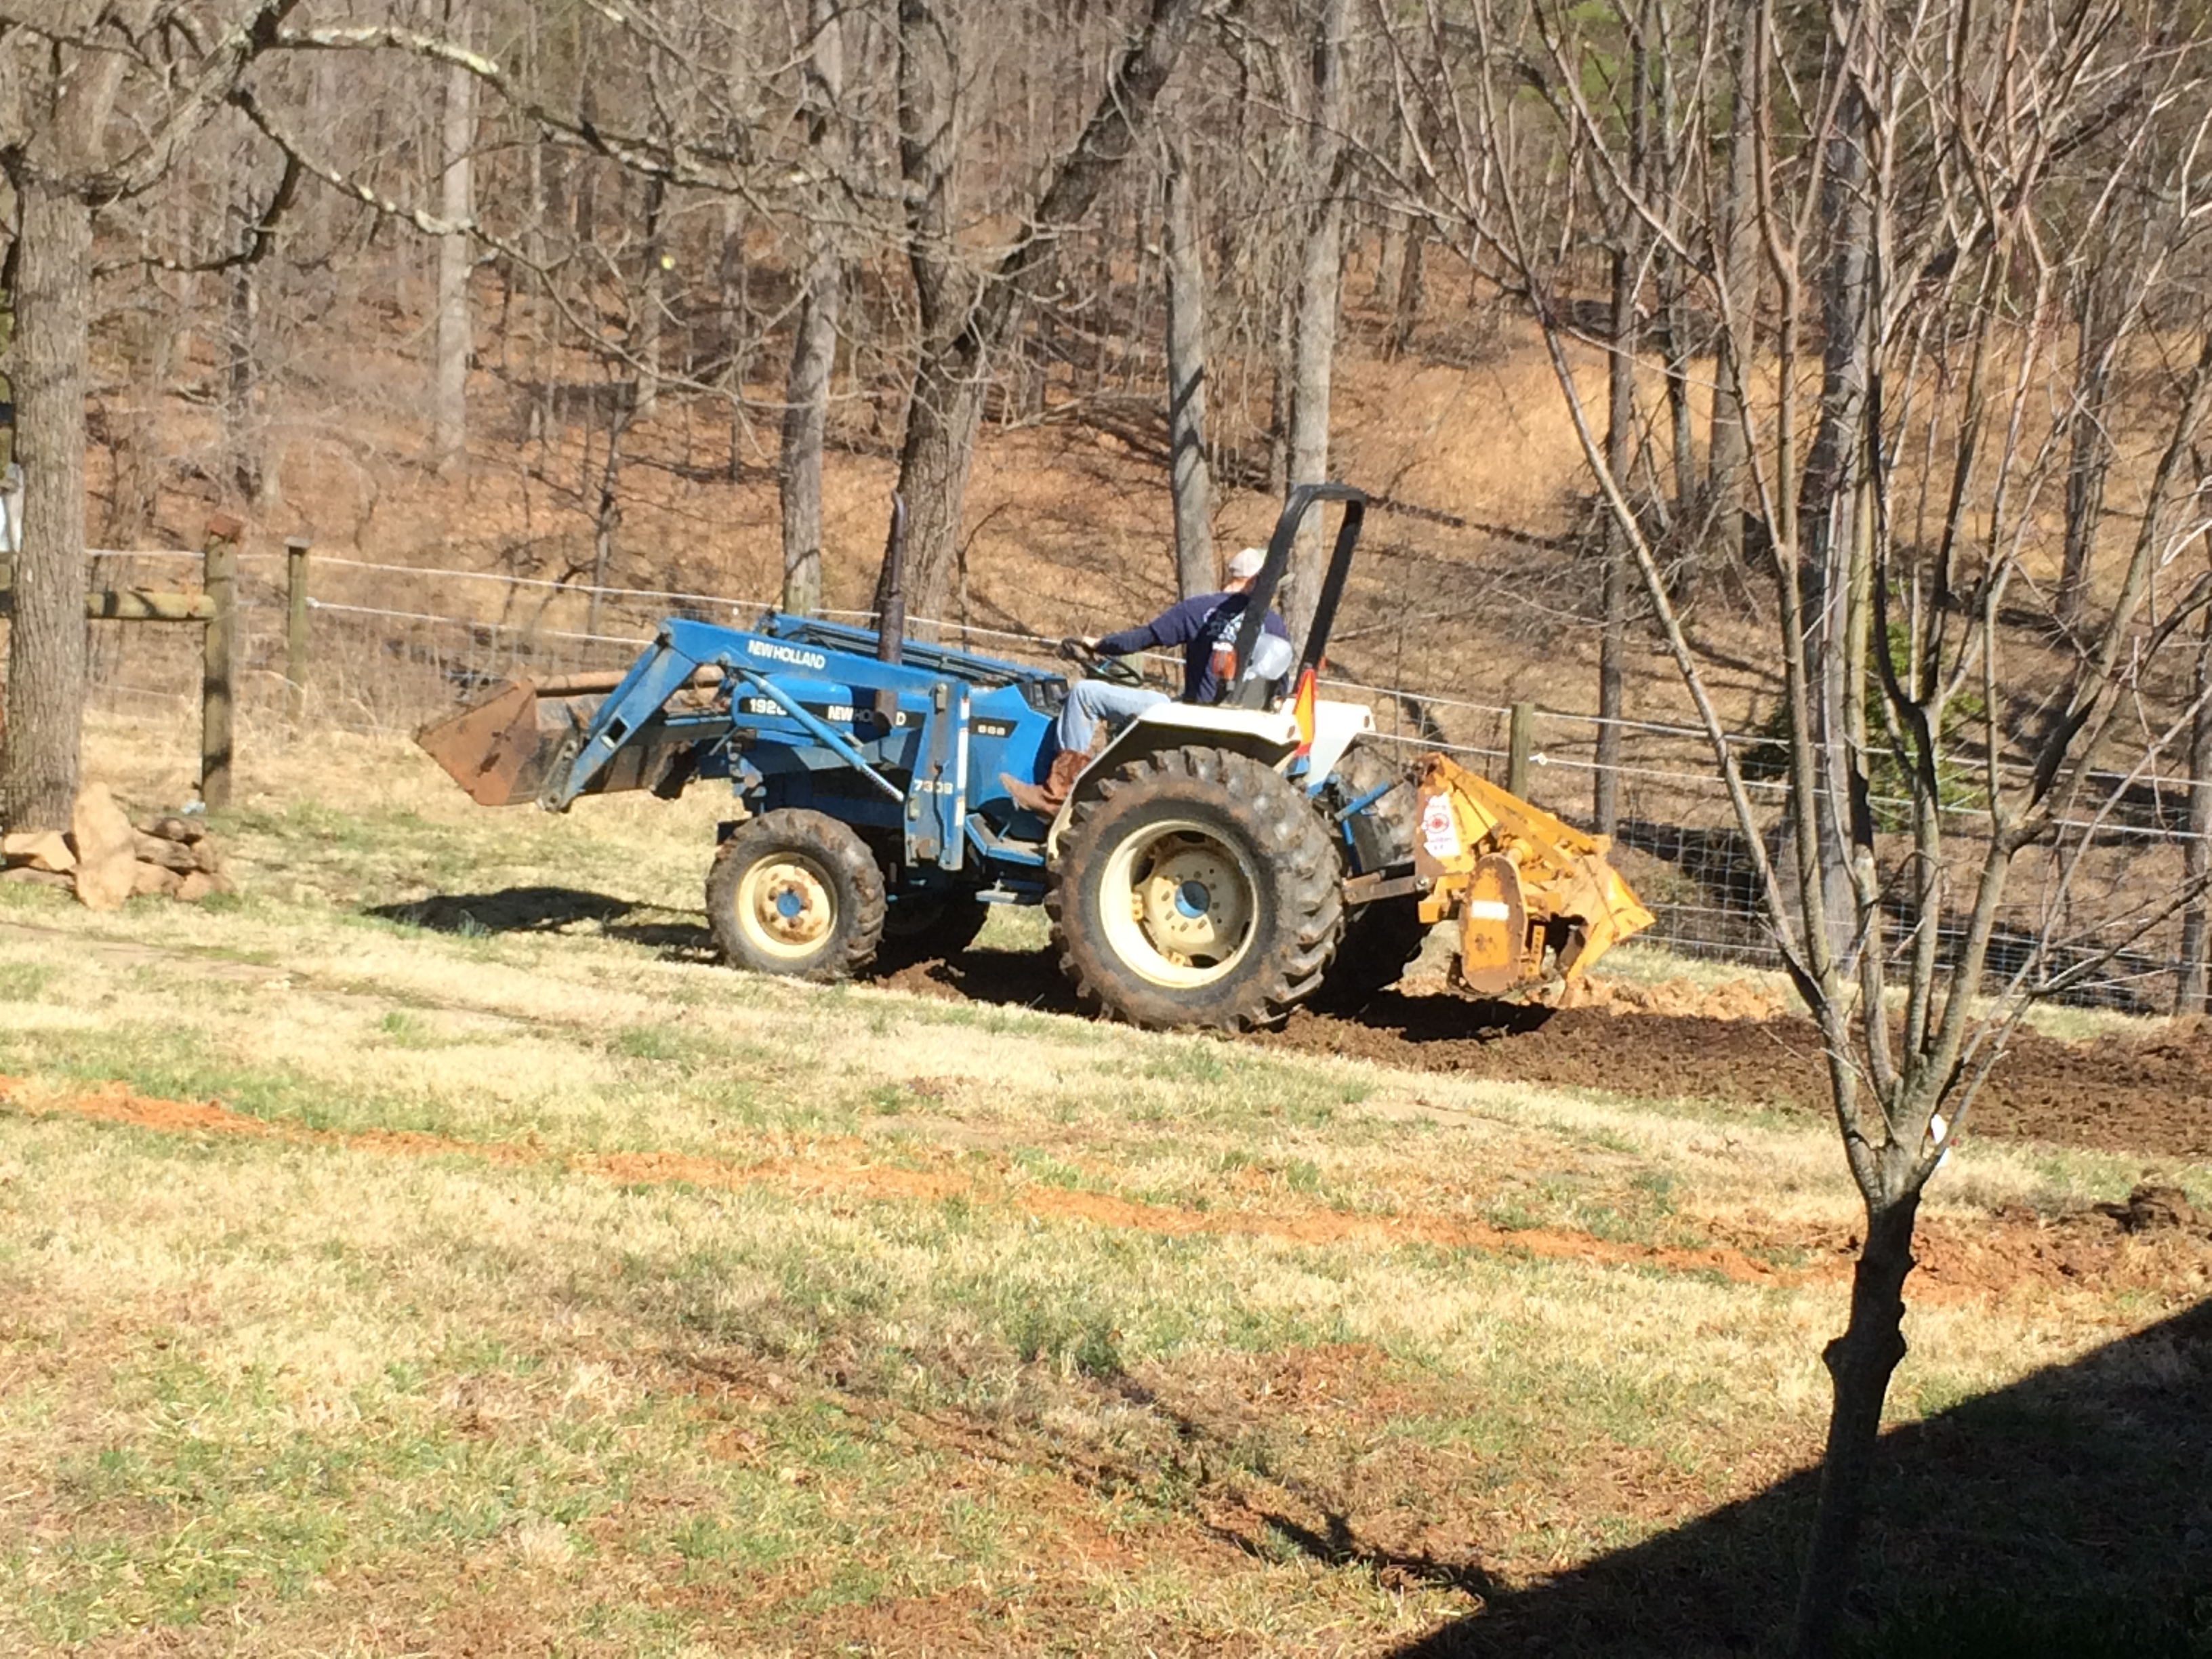 Dalton on the Tractor